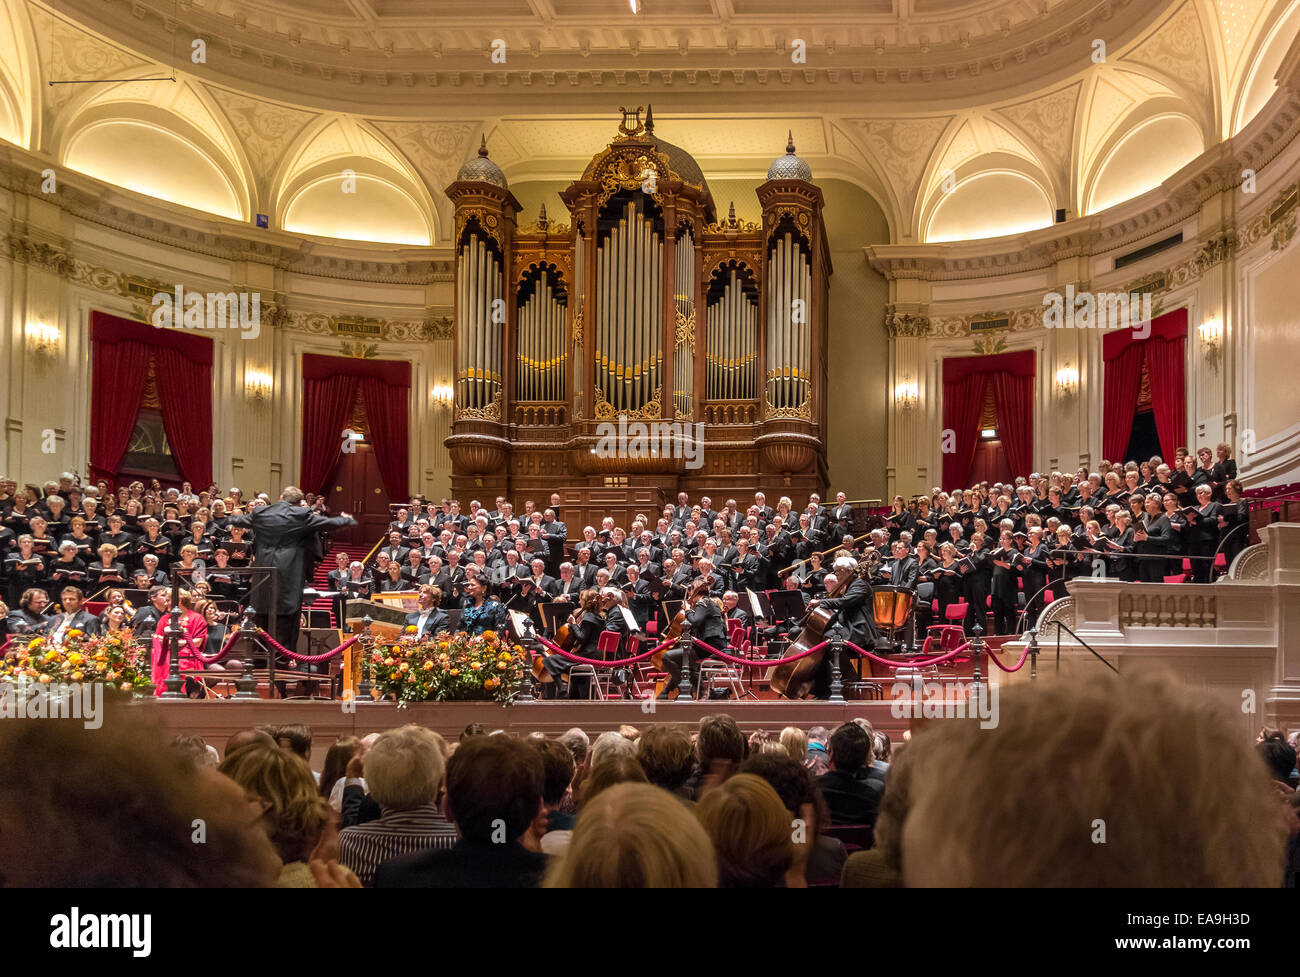 http://c7.alamy.com/comp/EA9H3D/amsterdam-royal-concertgebouw-interior-oratorio-choir-of-250-singing-EA9H3D.jpg